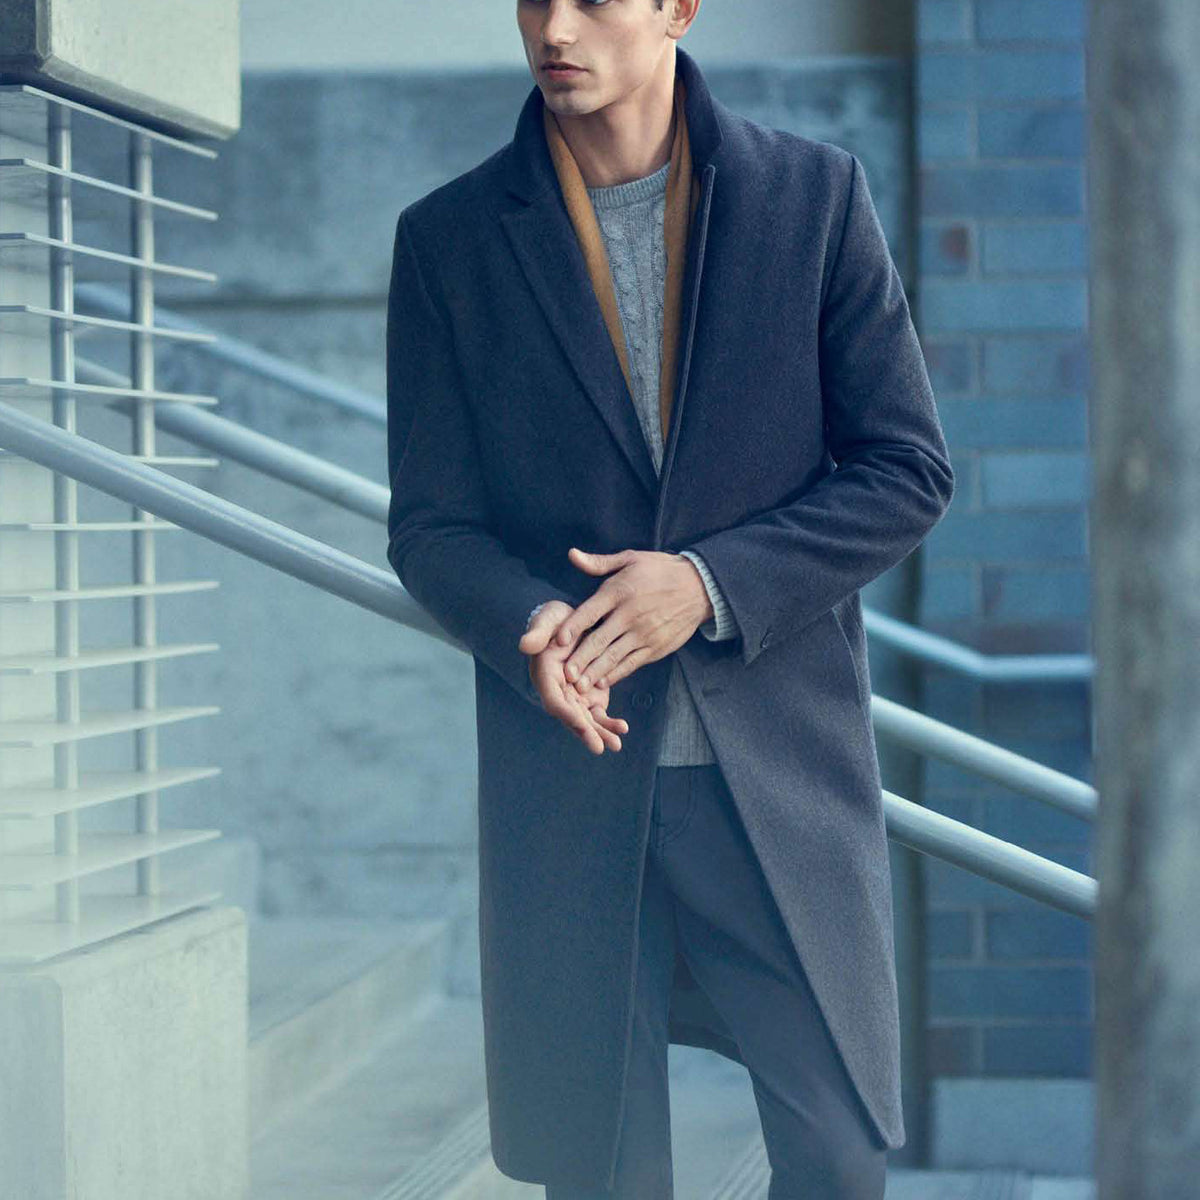 15 Quick Smart Style Tips For Men Lifestyle By Ps